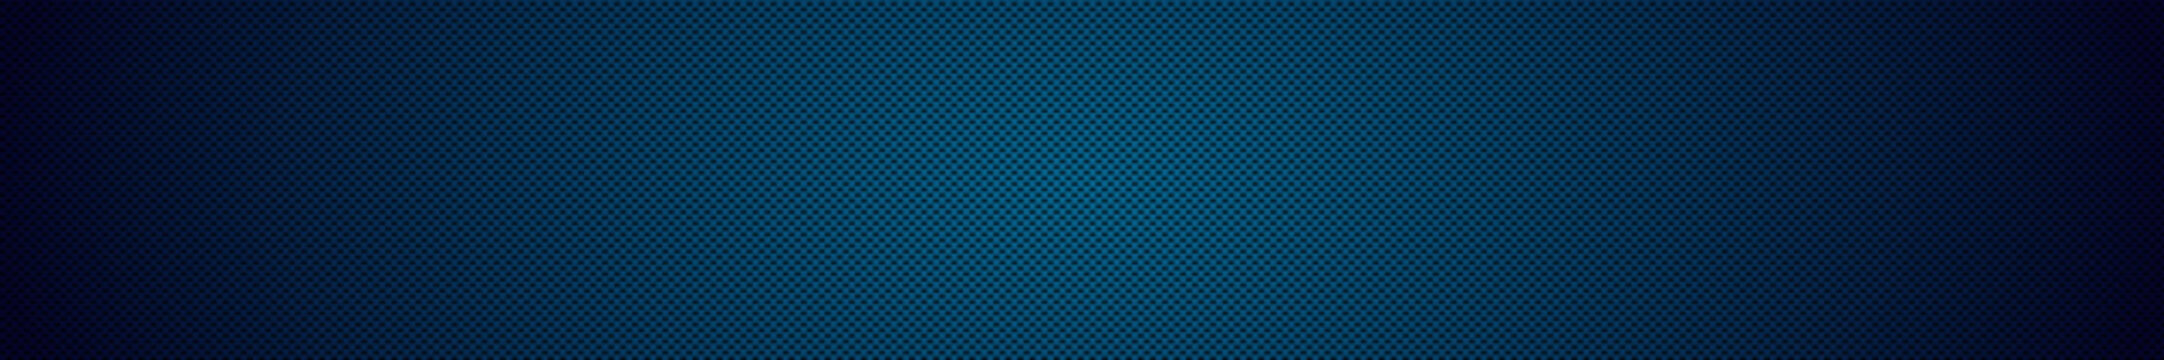 Panoramic texture of black and blue carbon fiber